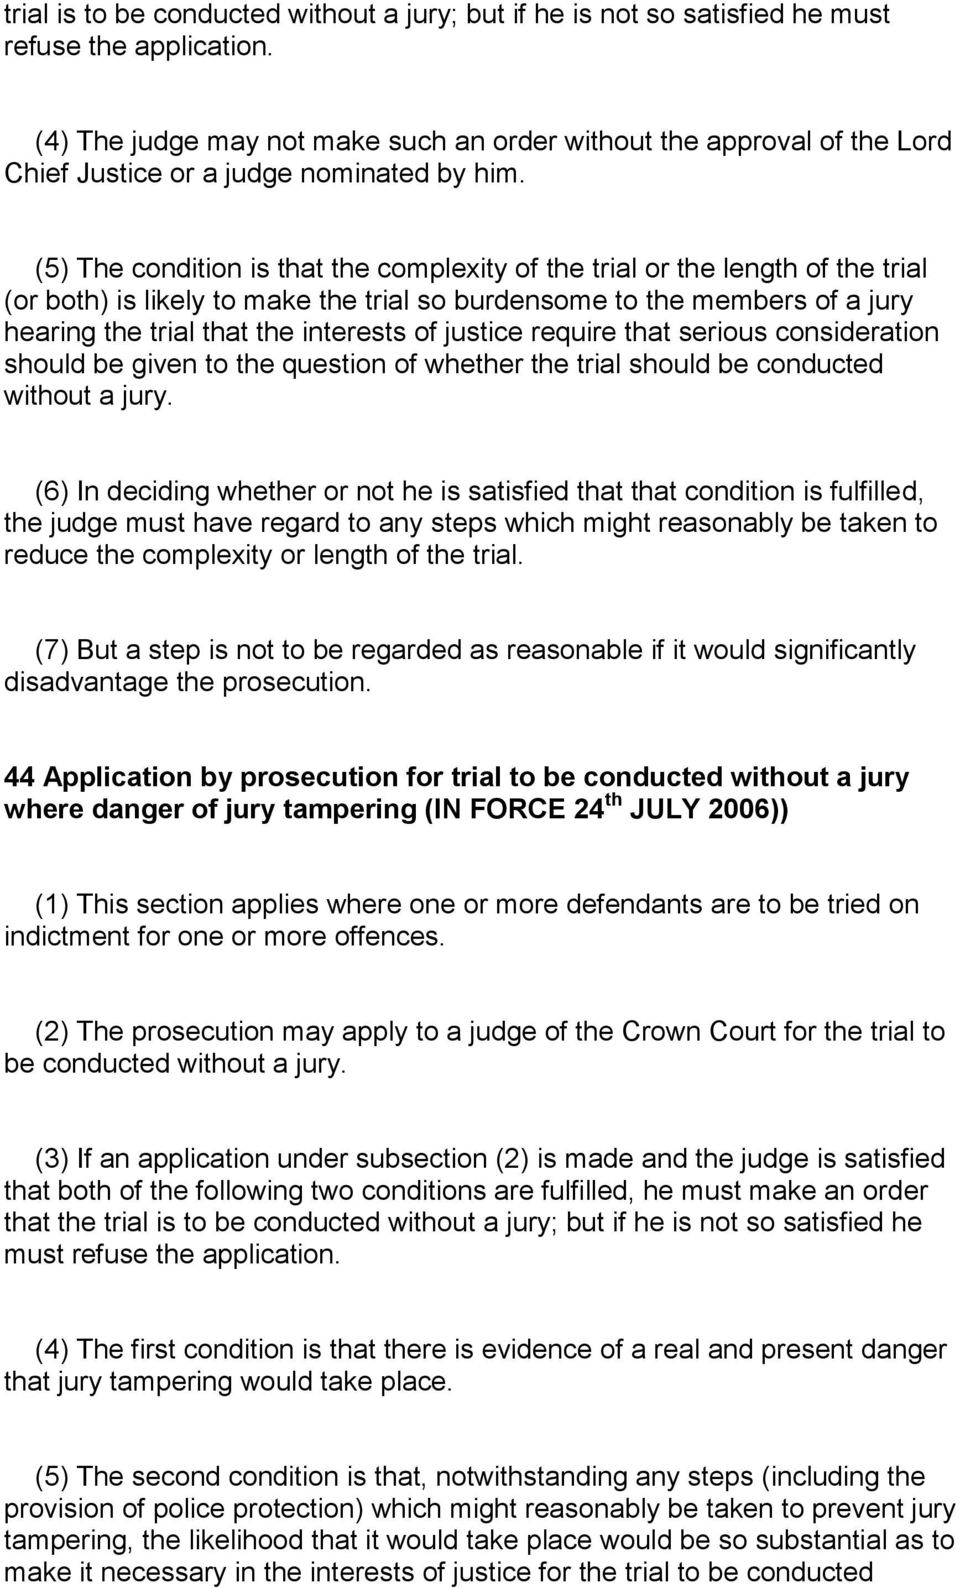 (5) The condition is that the complexity of the trial or the length of the trial (or both) is likely to make the trial so burdensome to the members of a jury hearing the trial that the interests of